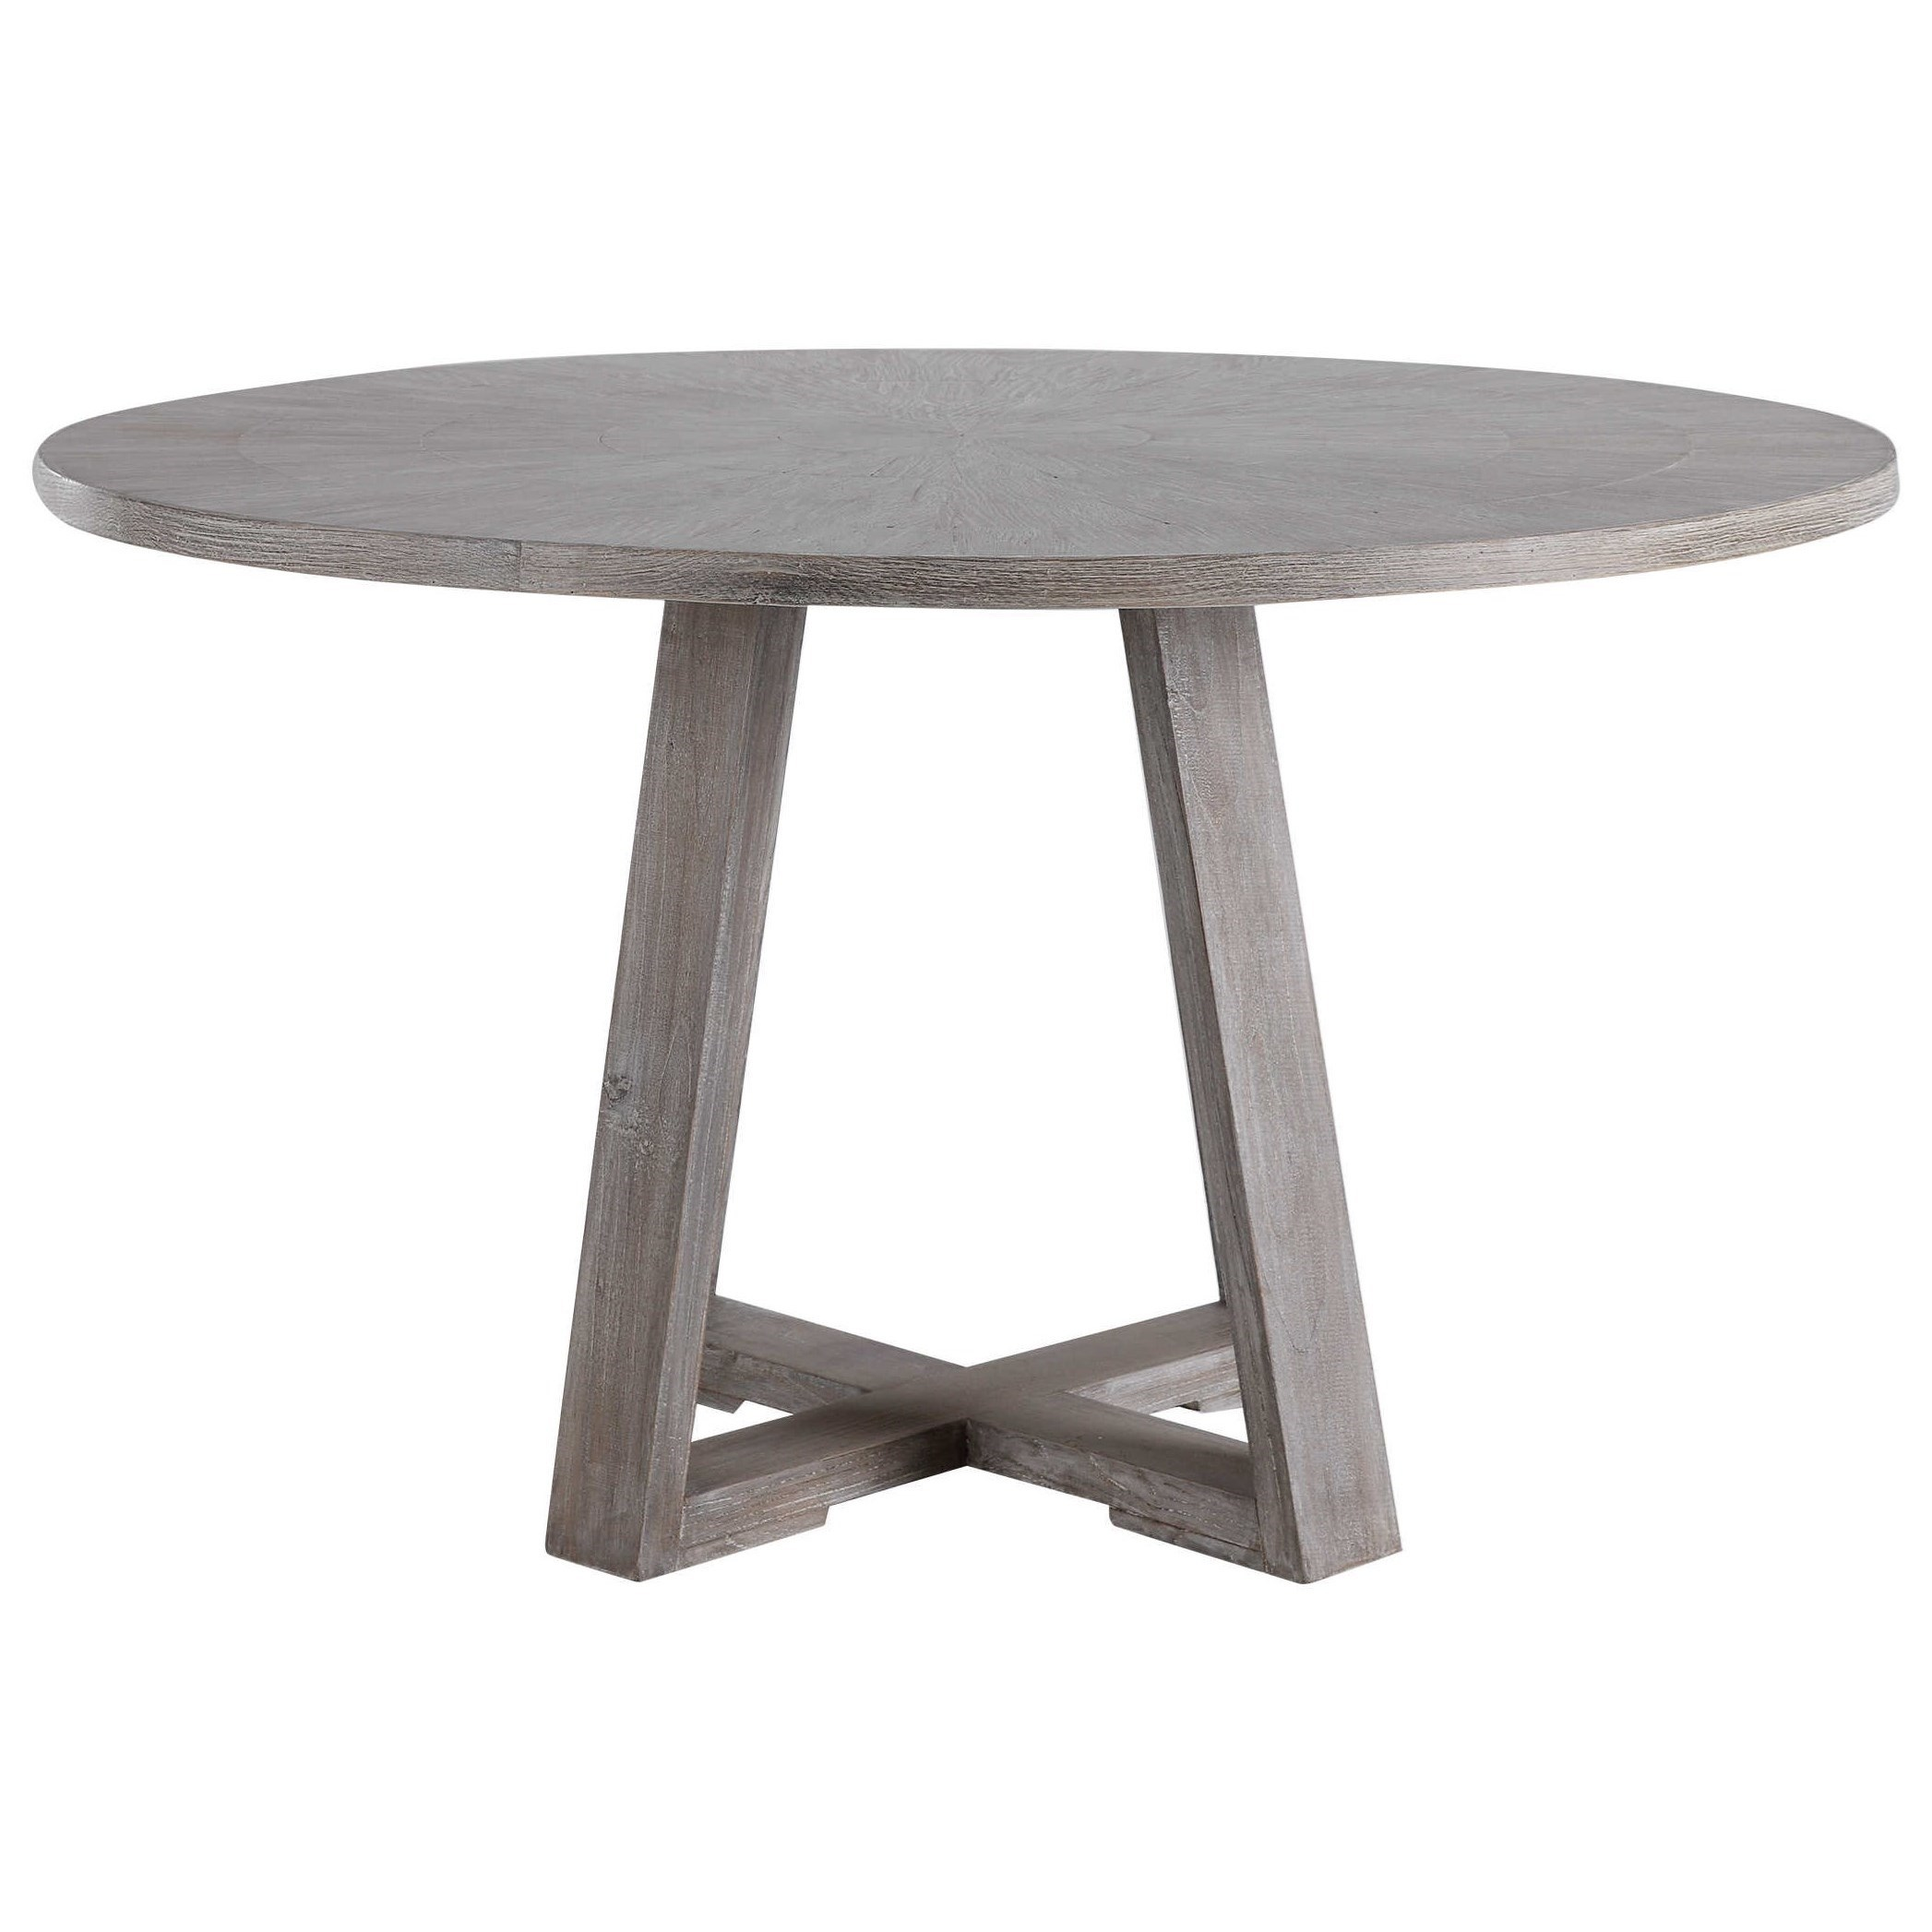 Accent Furniture Gidran Gray Dining Table by Uttermost at Del Sol Furniture